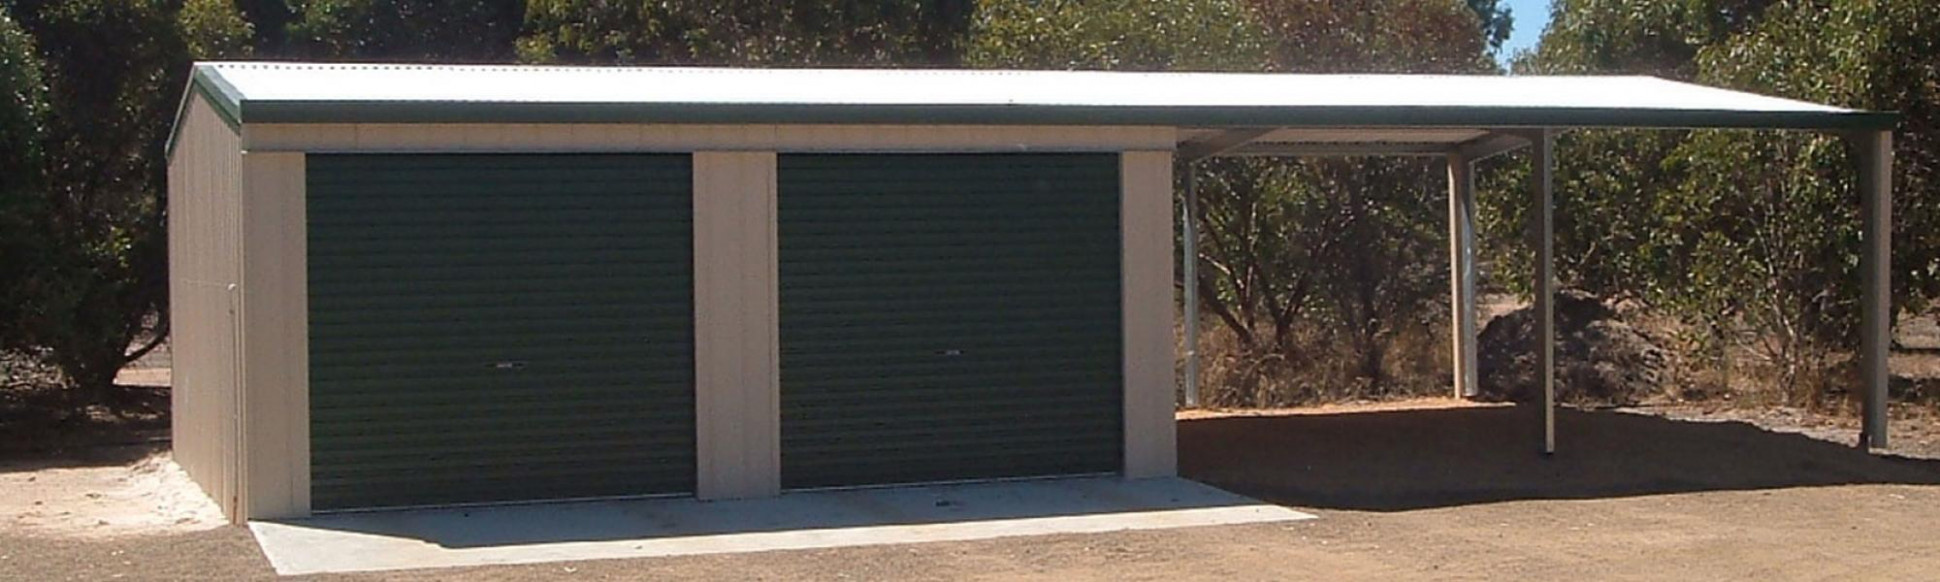 Steel Garaports Custom Designed | Wide Span Sheds Garage Doors On Carports